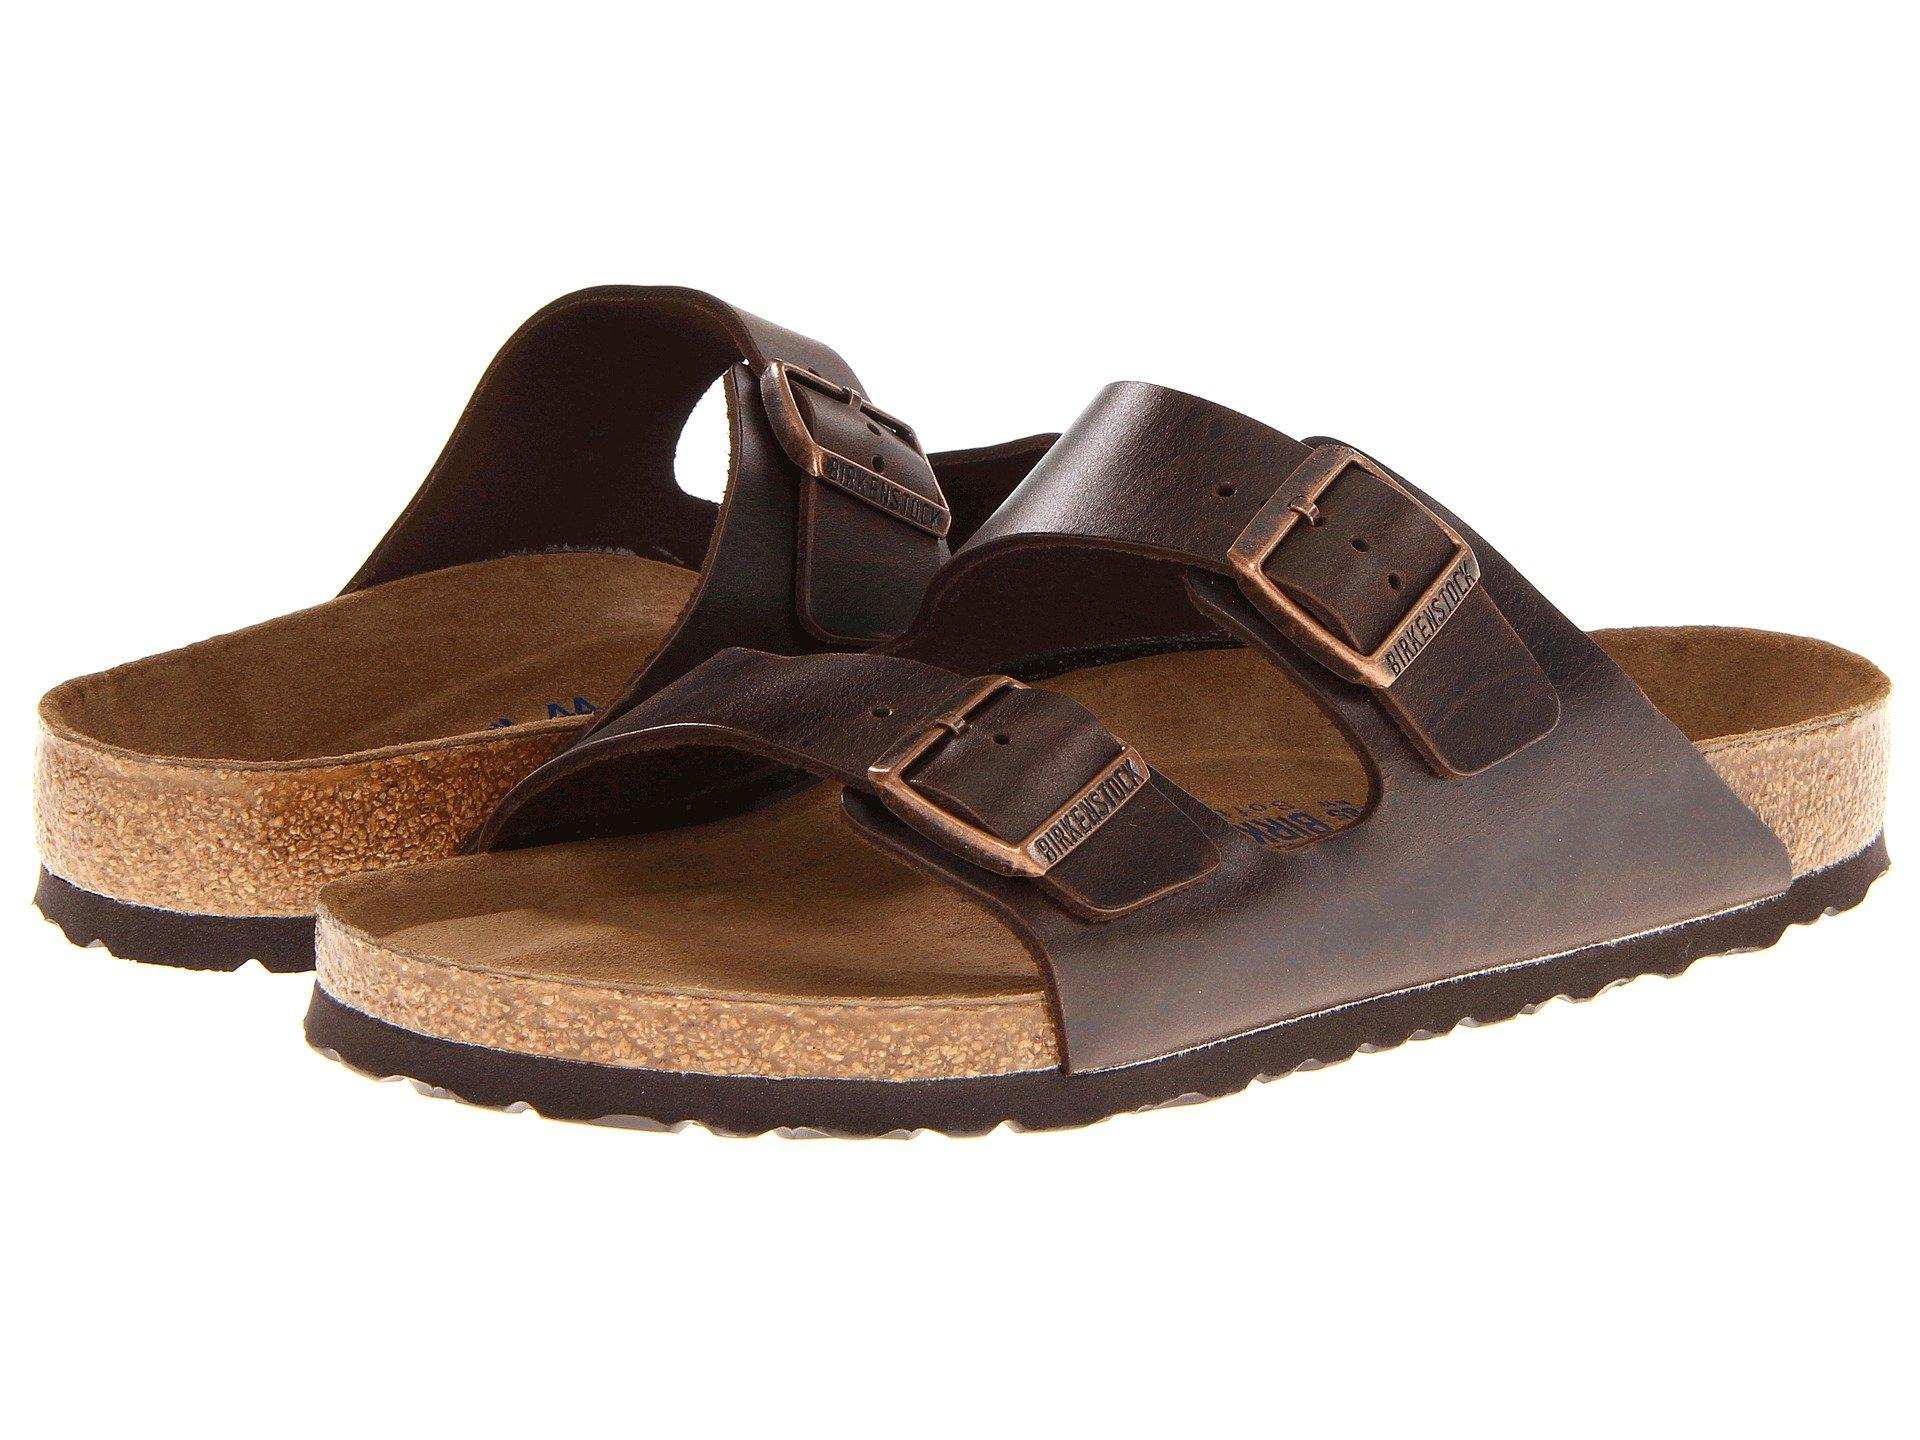 Lyst - Birkenstock Arizona Soft Footbed